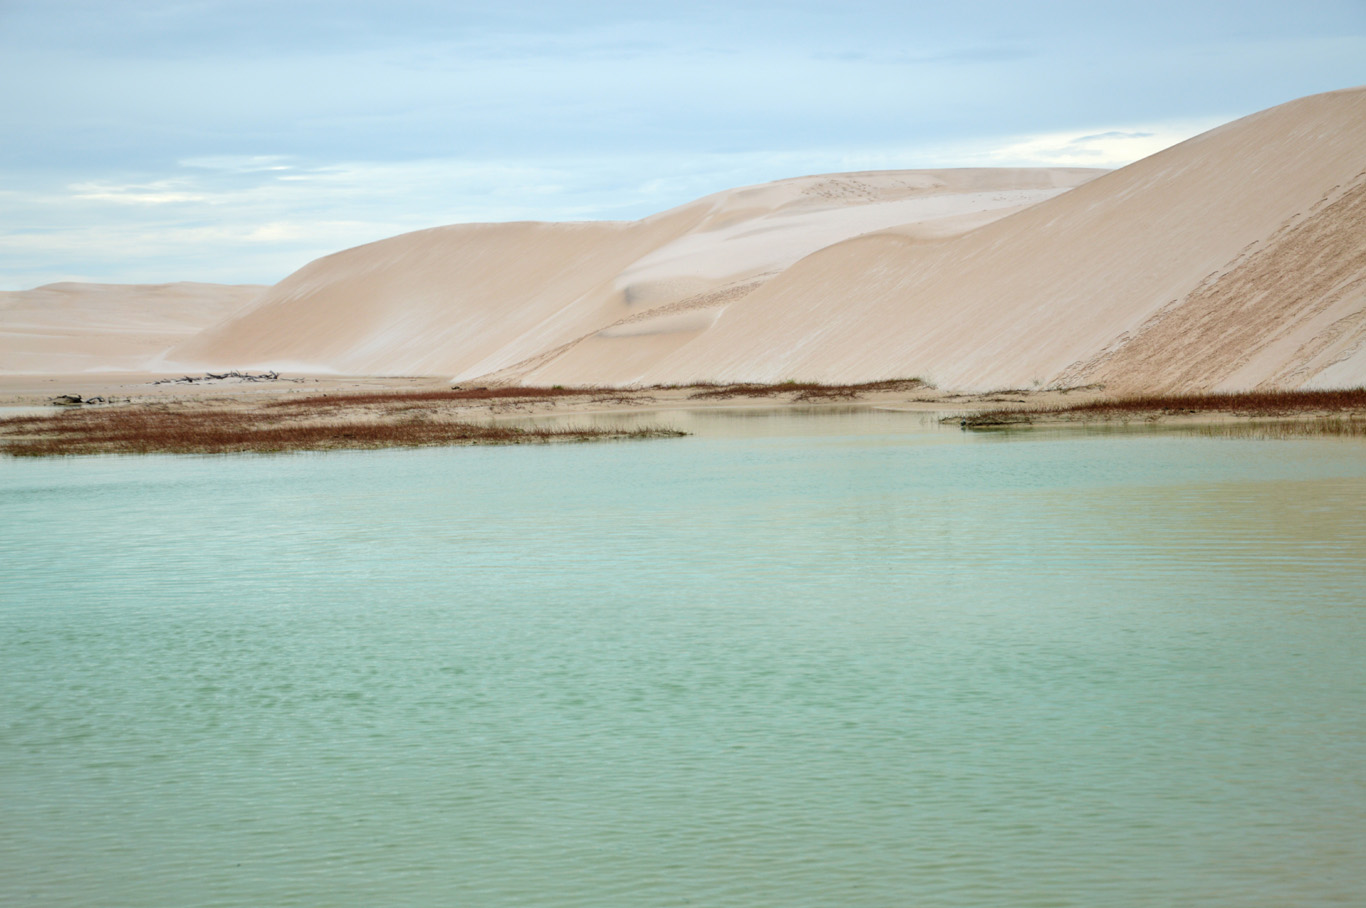 Dunes and water